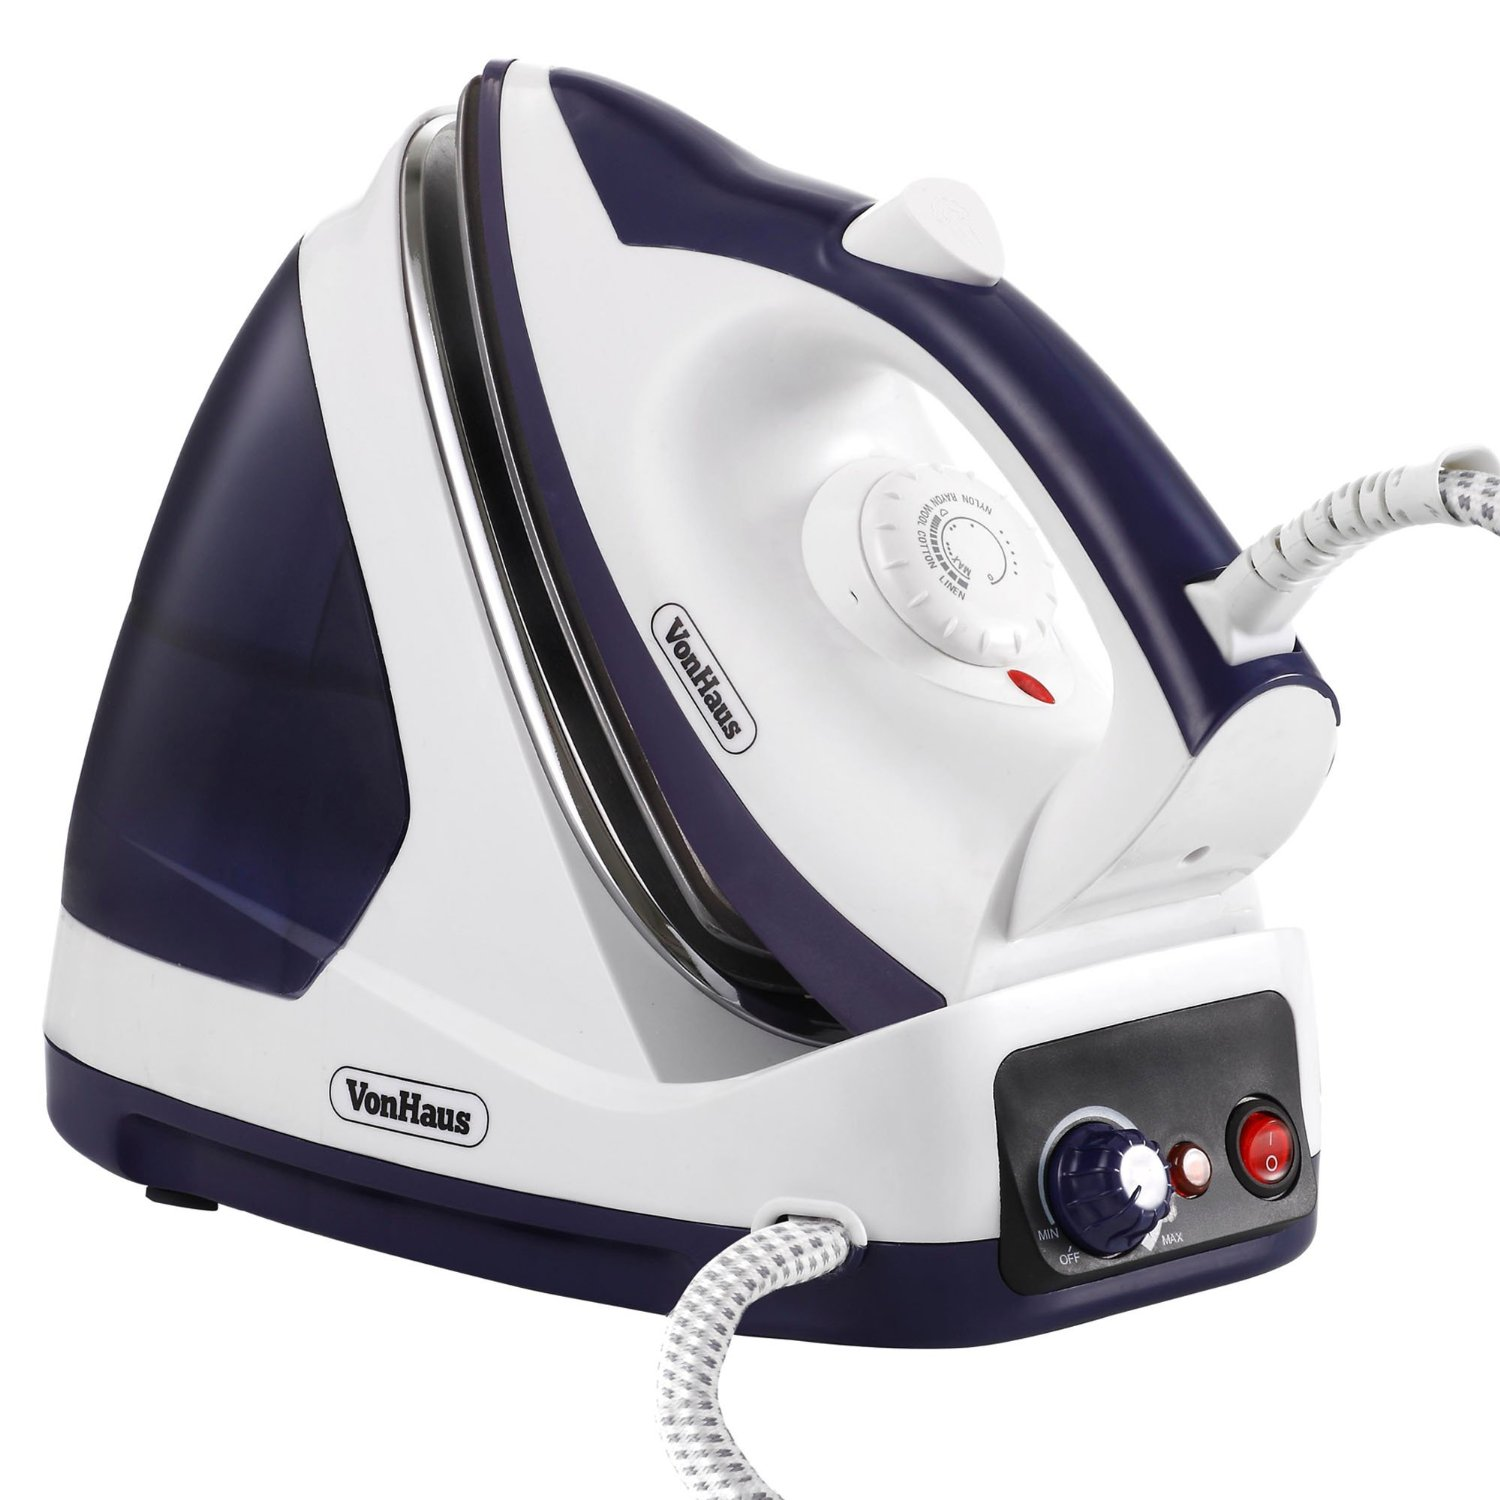 Cheap Steam Generator Iron UK Reviews In 2018 Top 10 Reviewed